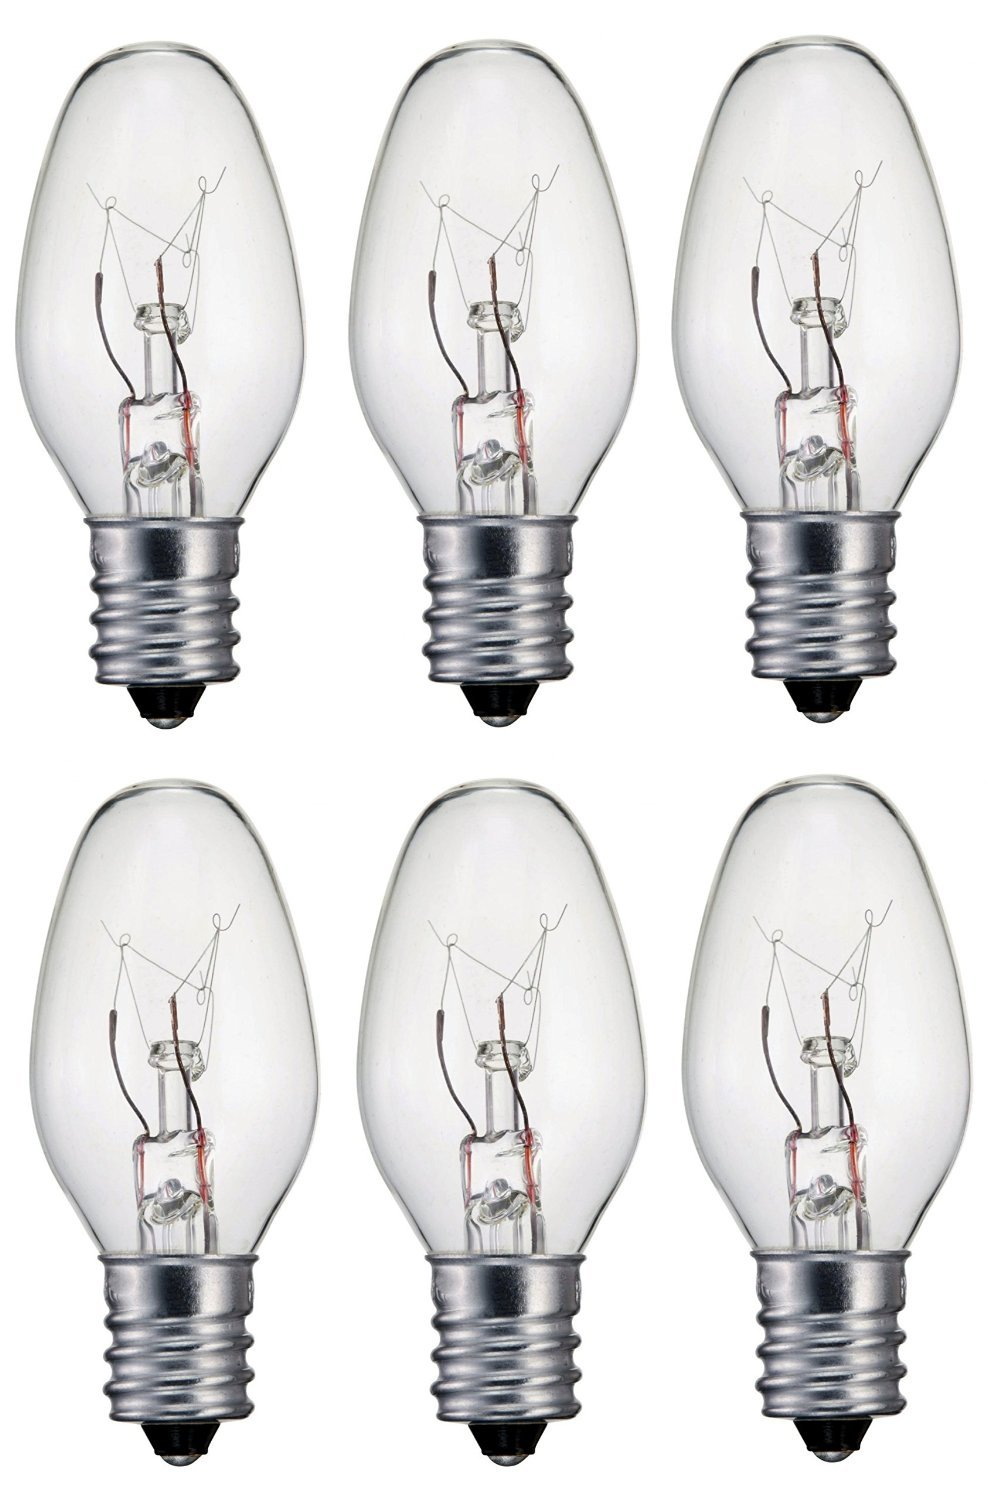 Creative Hobbies® Replacement Light Bulbs for Scentsy Plug-In Warmer Wax Diffuser and Salt Lamps - 15 Watt, Clear, Steady Burning, Individually Boxed, Case of 25 Bulbs